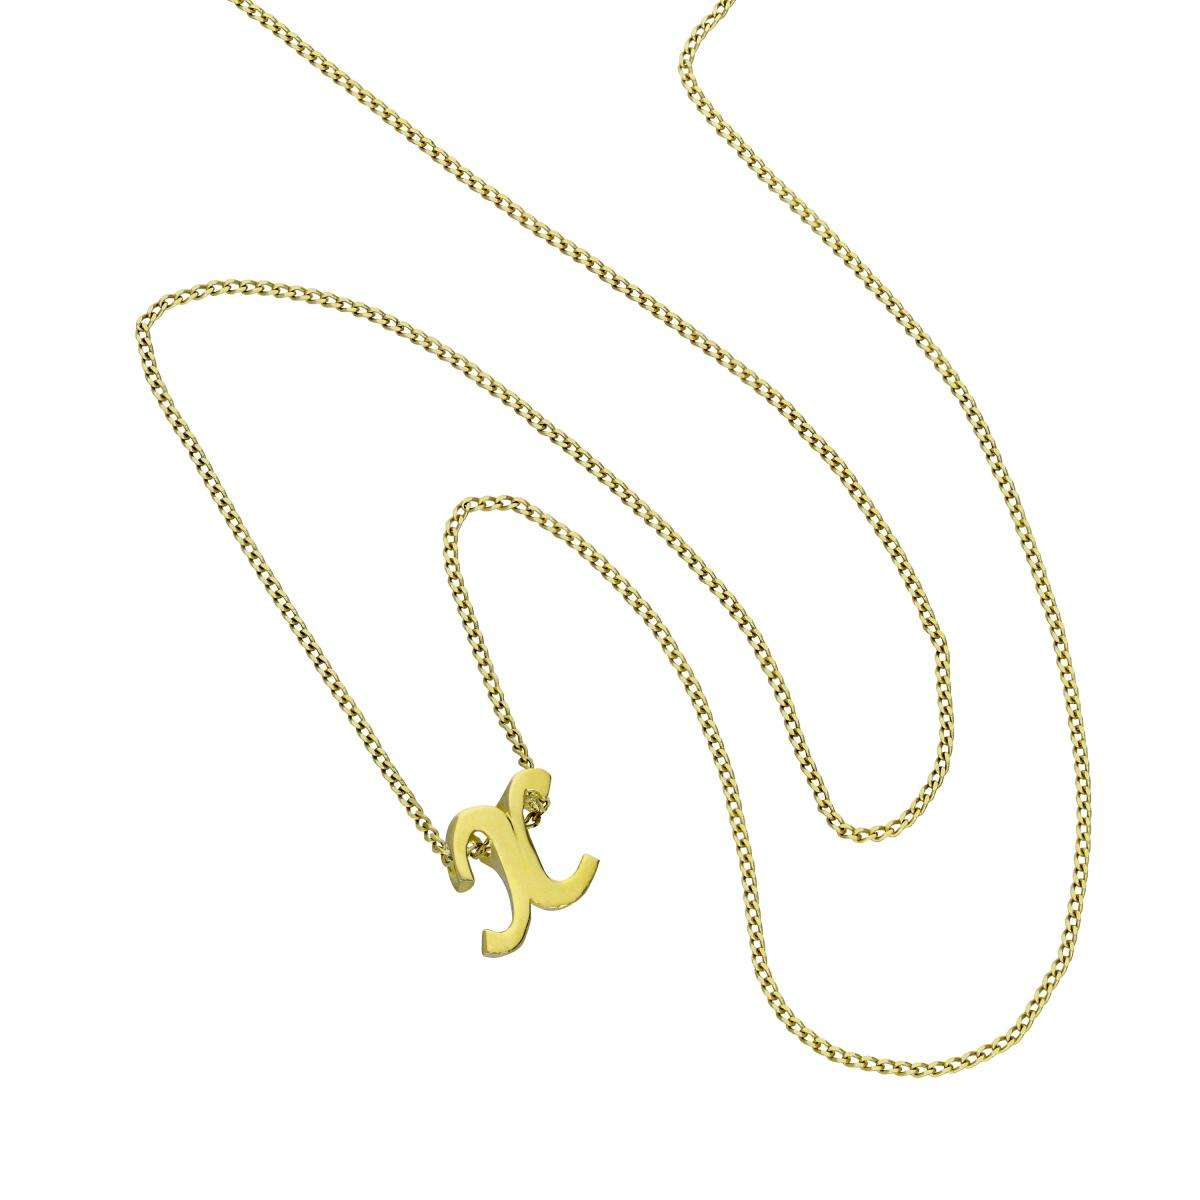 Alterative image for Tiny 9ct Gold Alphabet Letter X Pendant Necklace 16 - 20 Inches